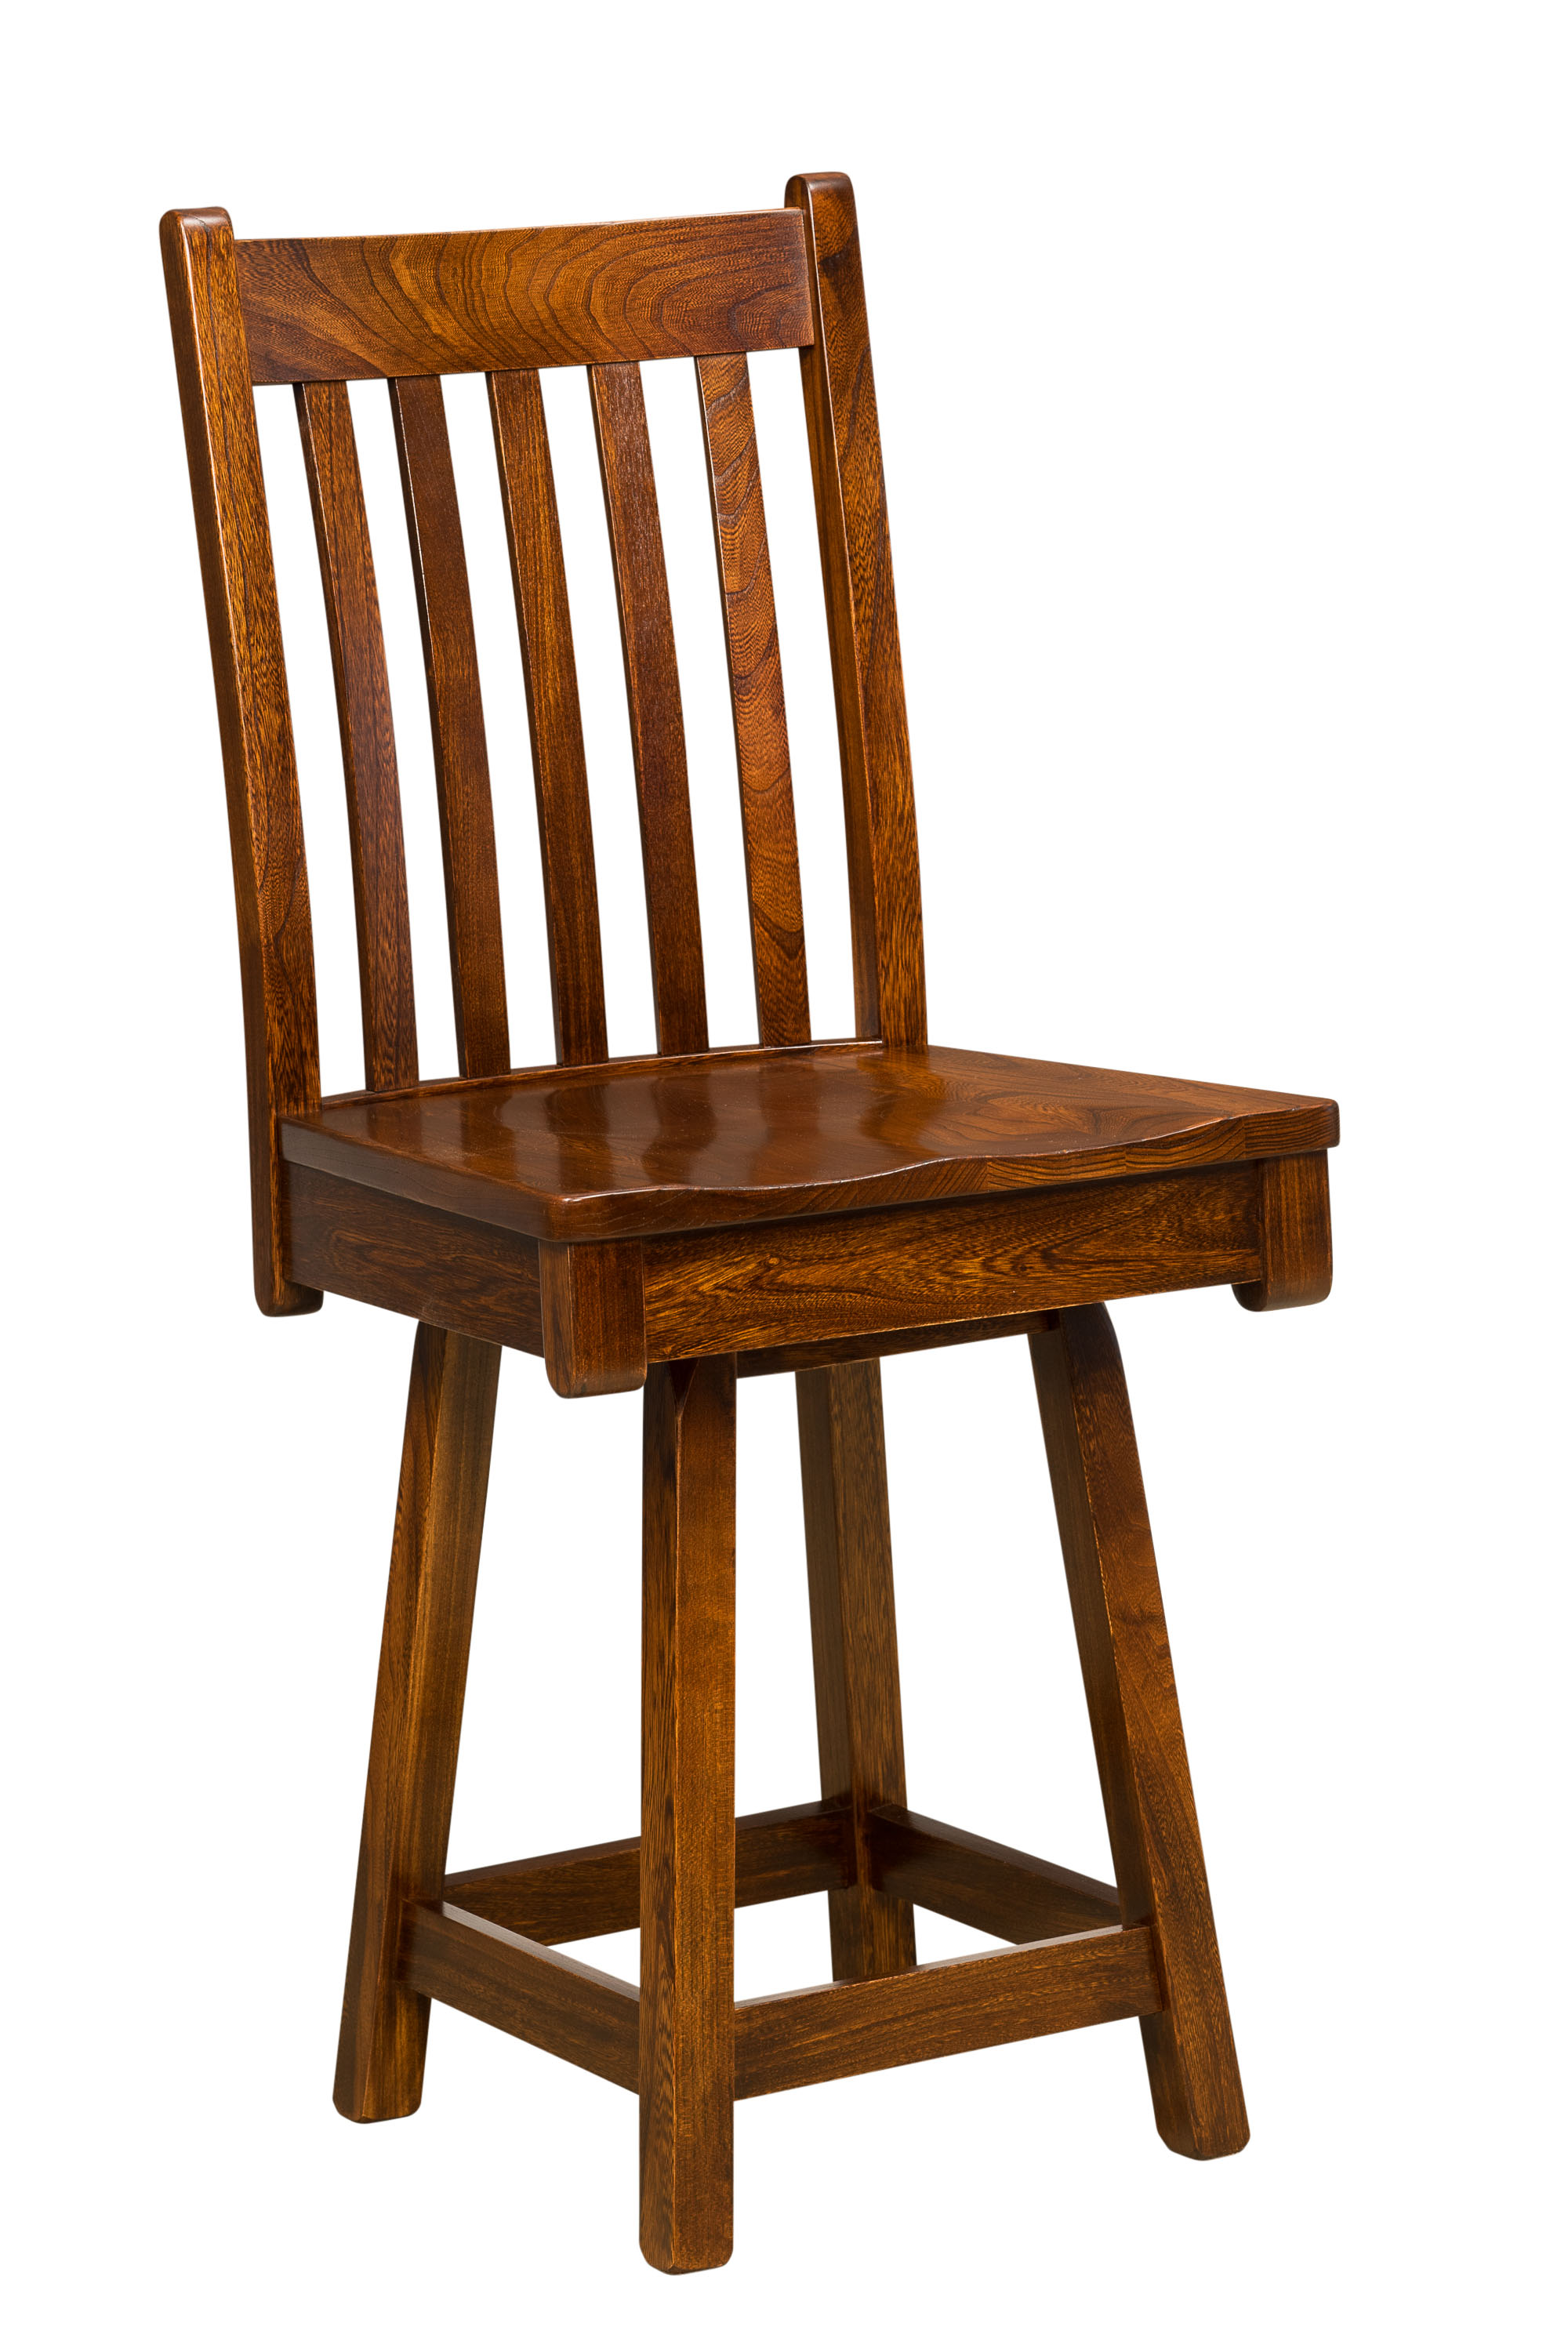 swivel chair regal fishing kmart bar stool everything amish chairs